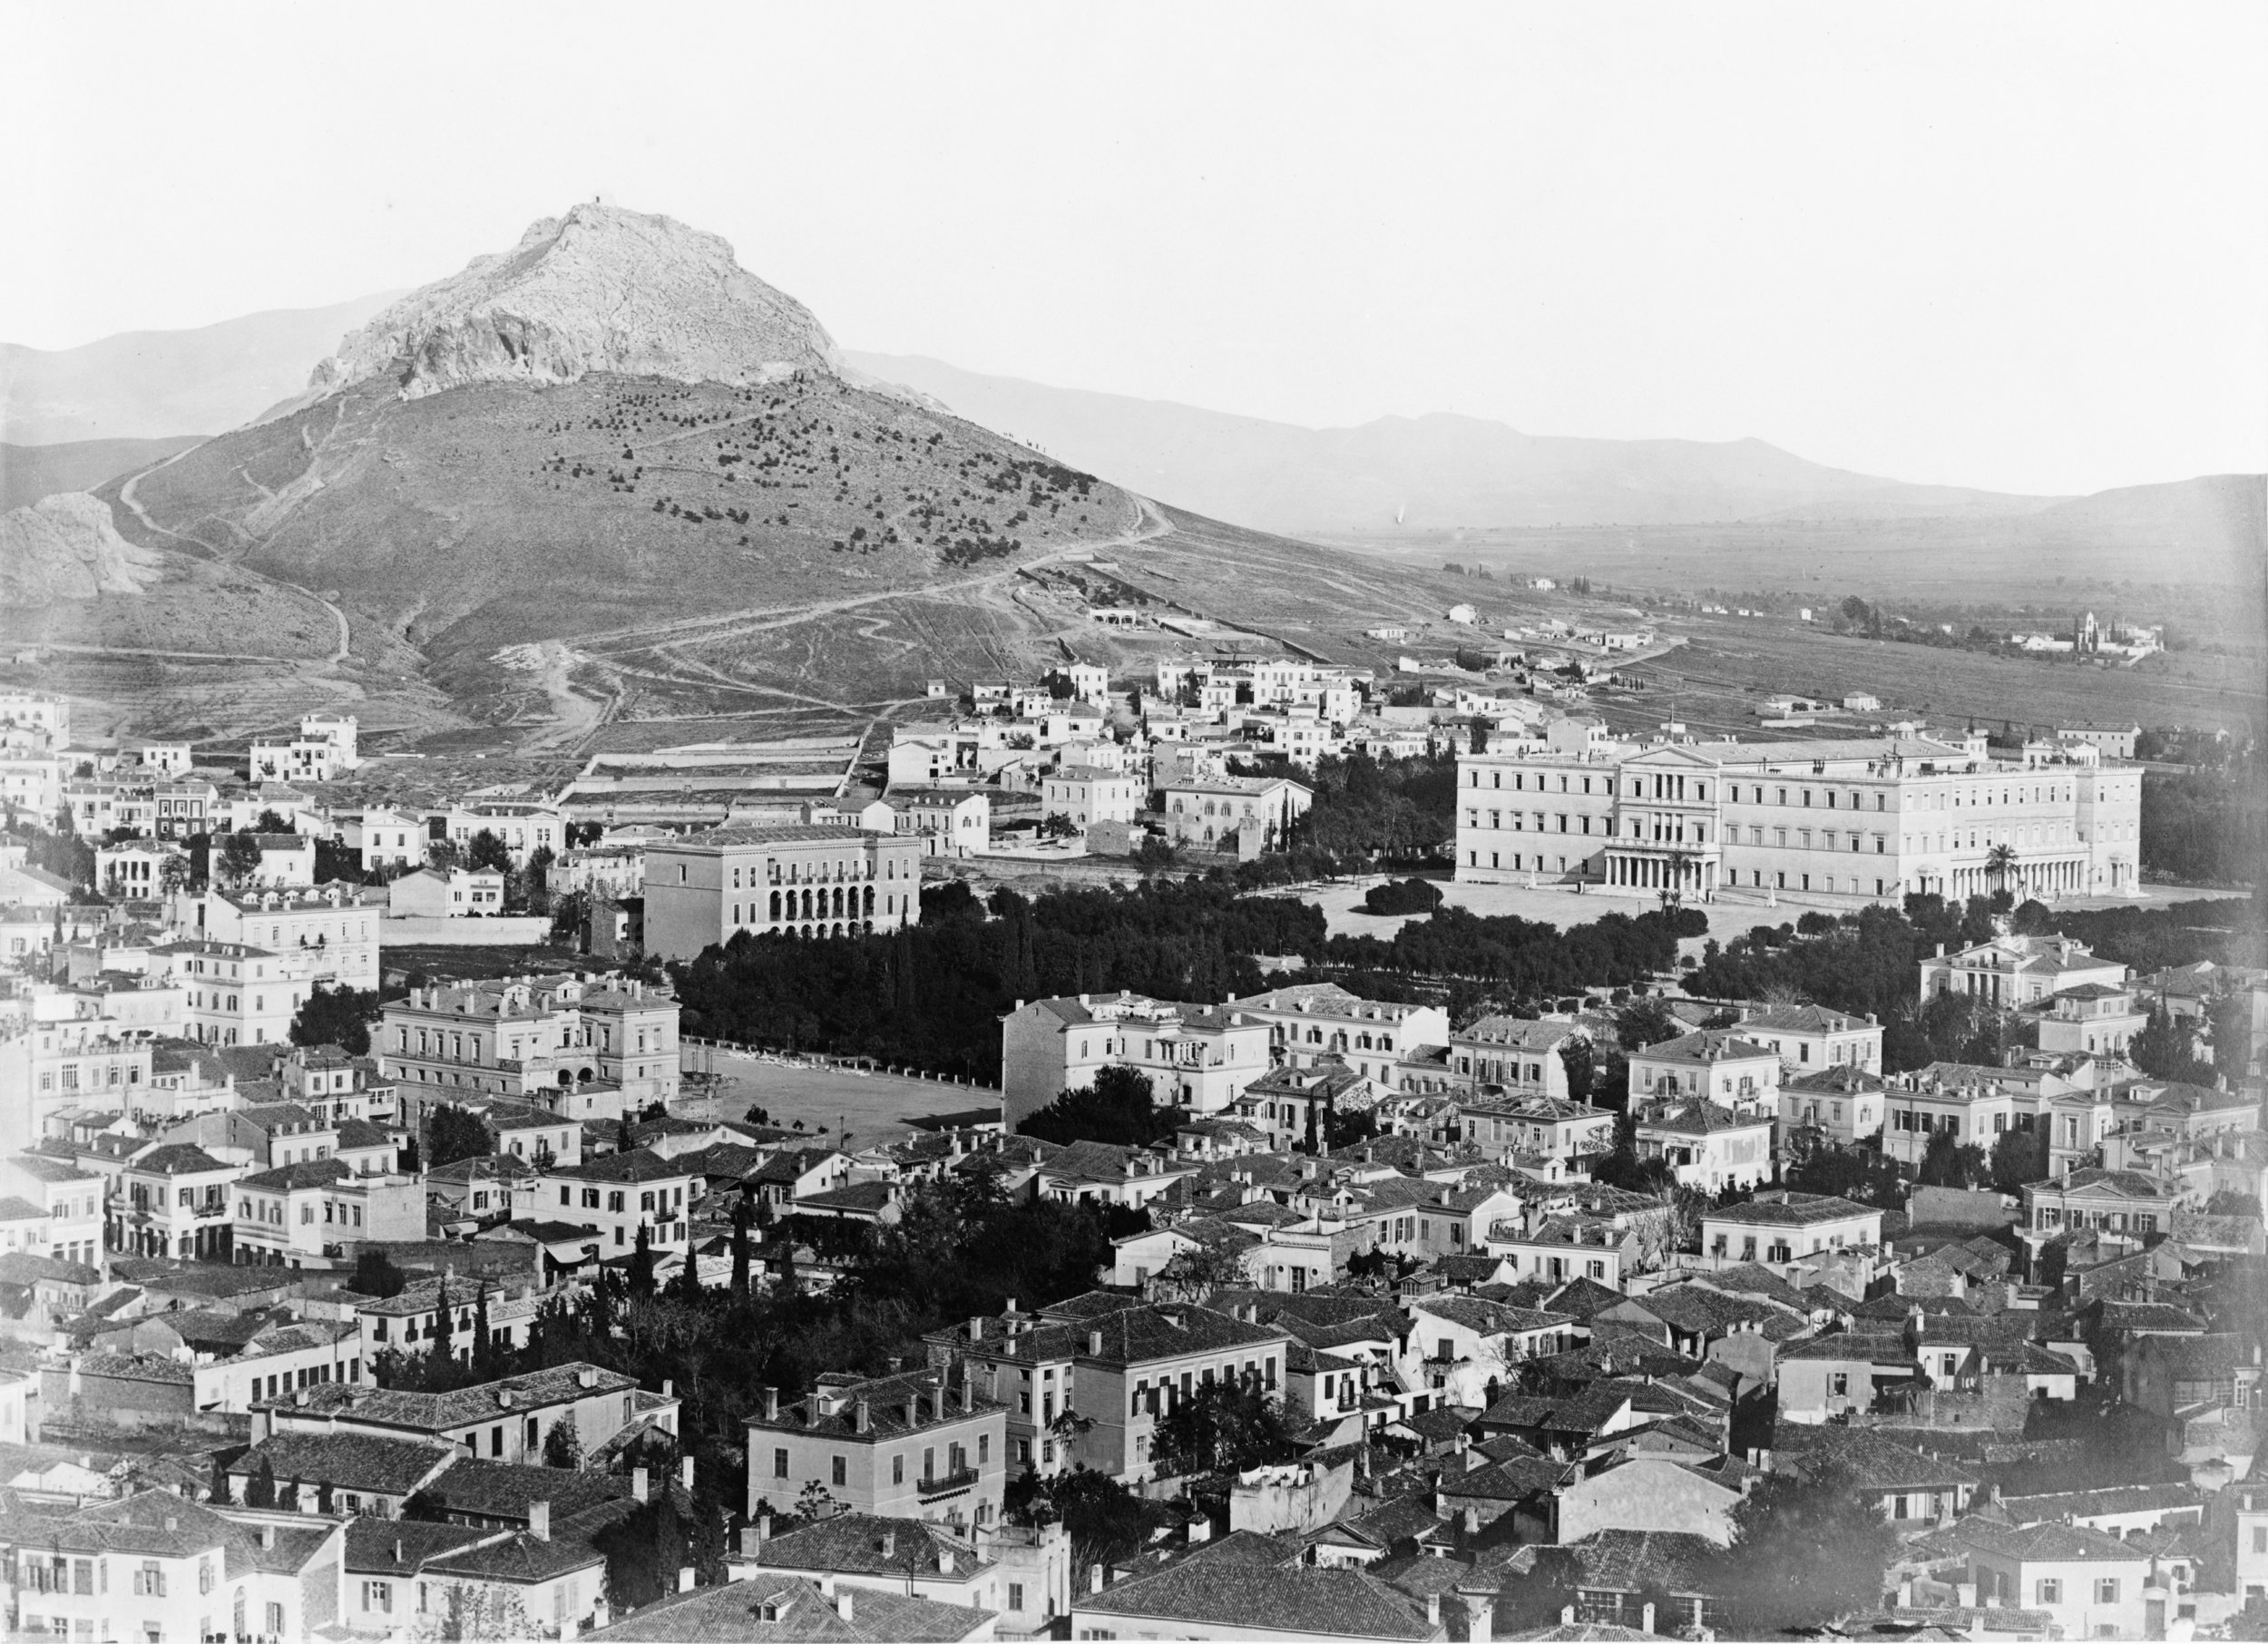 Panoramic view of Athens showing the Old Royal Palace and Mount Lycabettus, taken between 1850 and 1880. Courtesy of the Library of Congress.